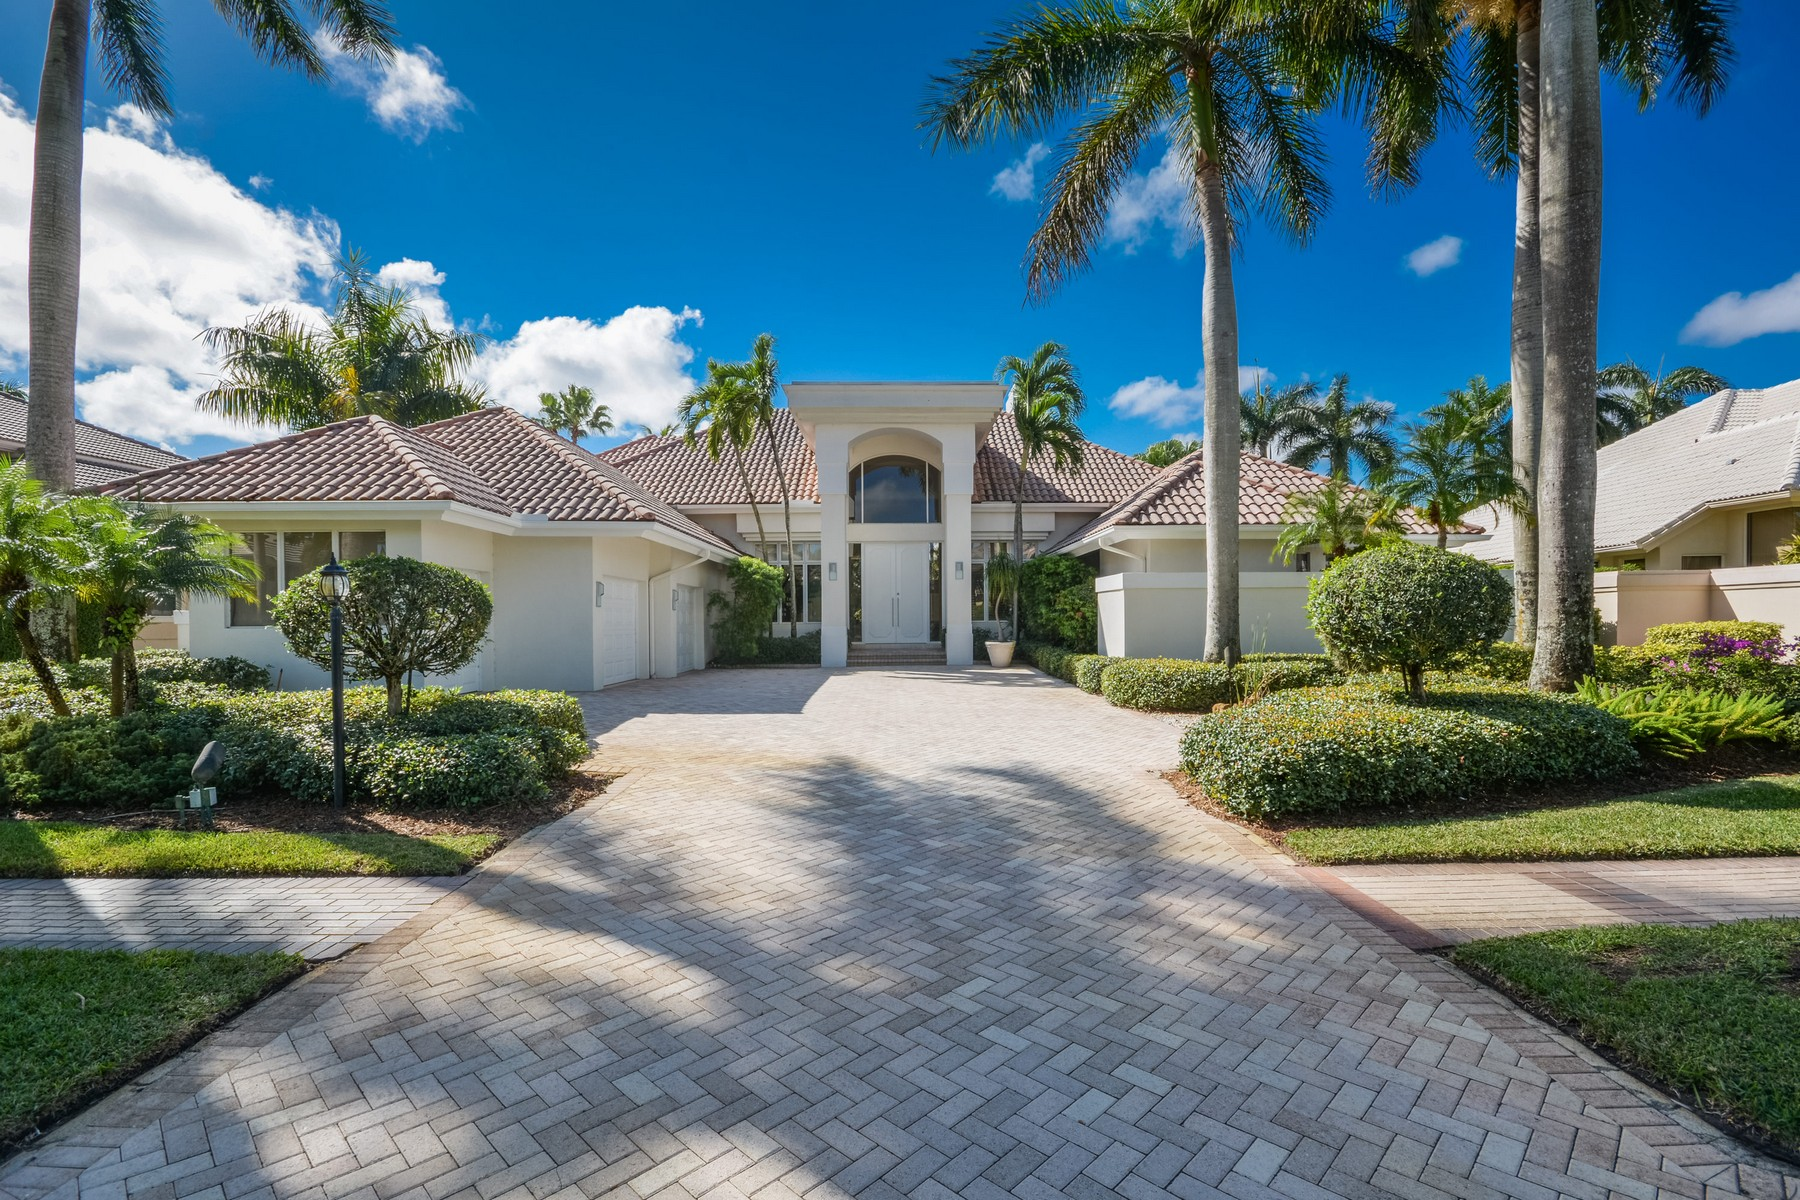 sales property at 7244 Queenferry Cir , Boca Raton, FL 33496